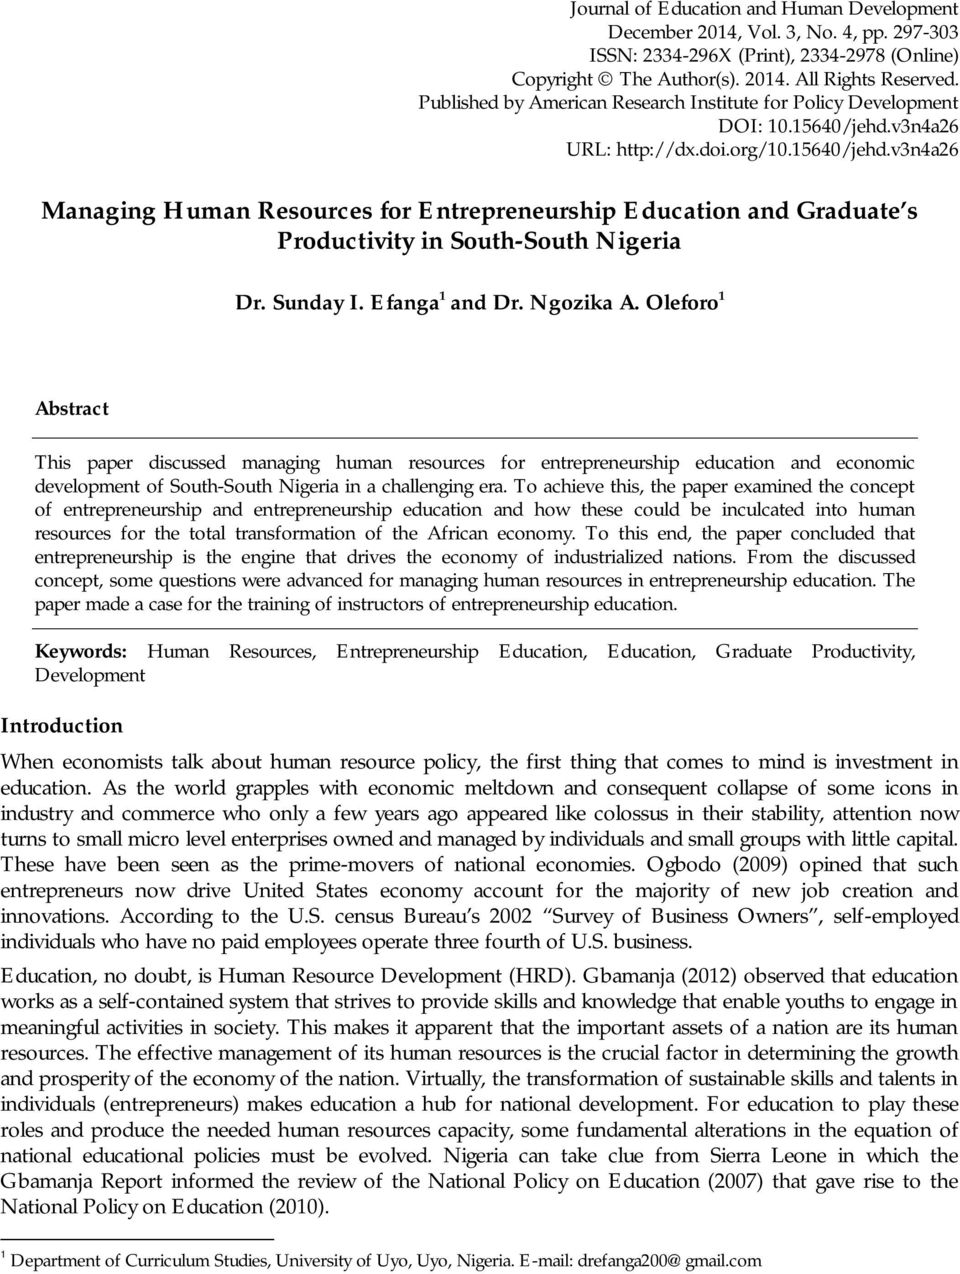 v3n4a26 URL: http://dx.doi.org/10.15640/jehd.v3n4a26 Managing Human Resources for Entrepreneurship Education and Graduate s Productivity in South-South Nigeria Dr. Sunday I. Efanga 1 and Dr.